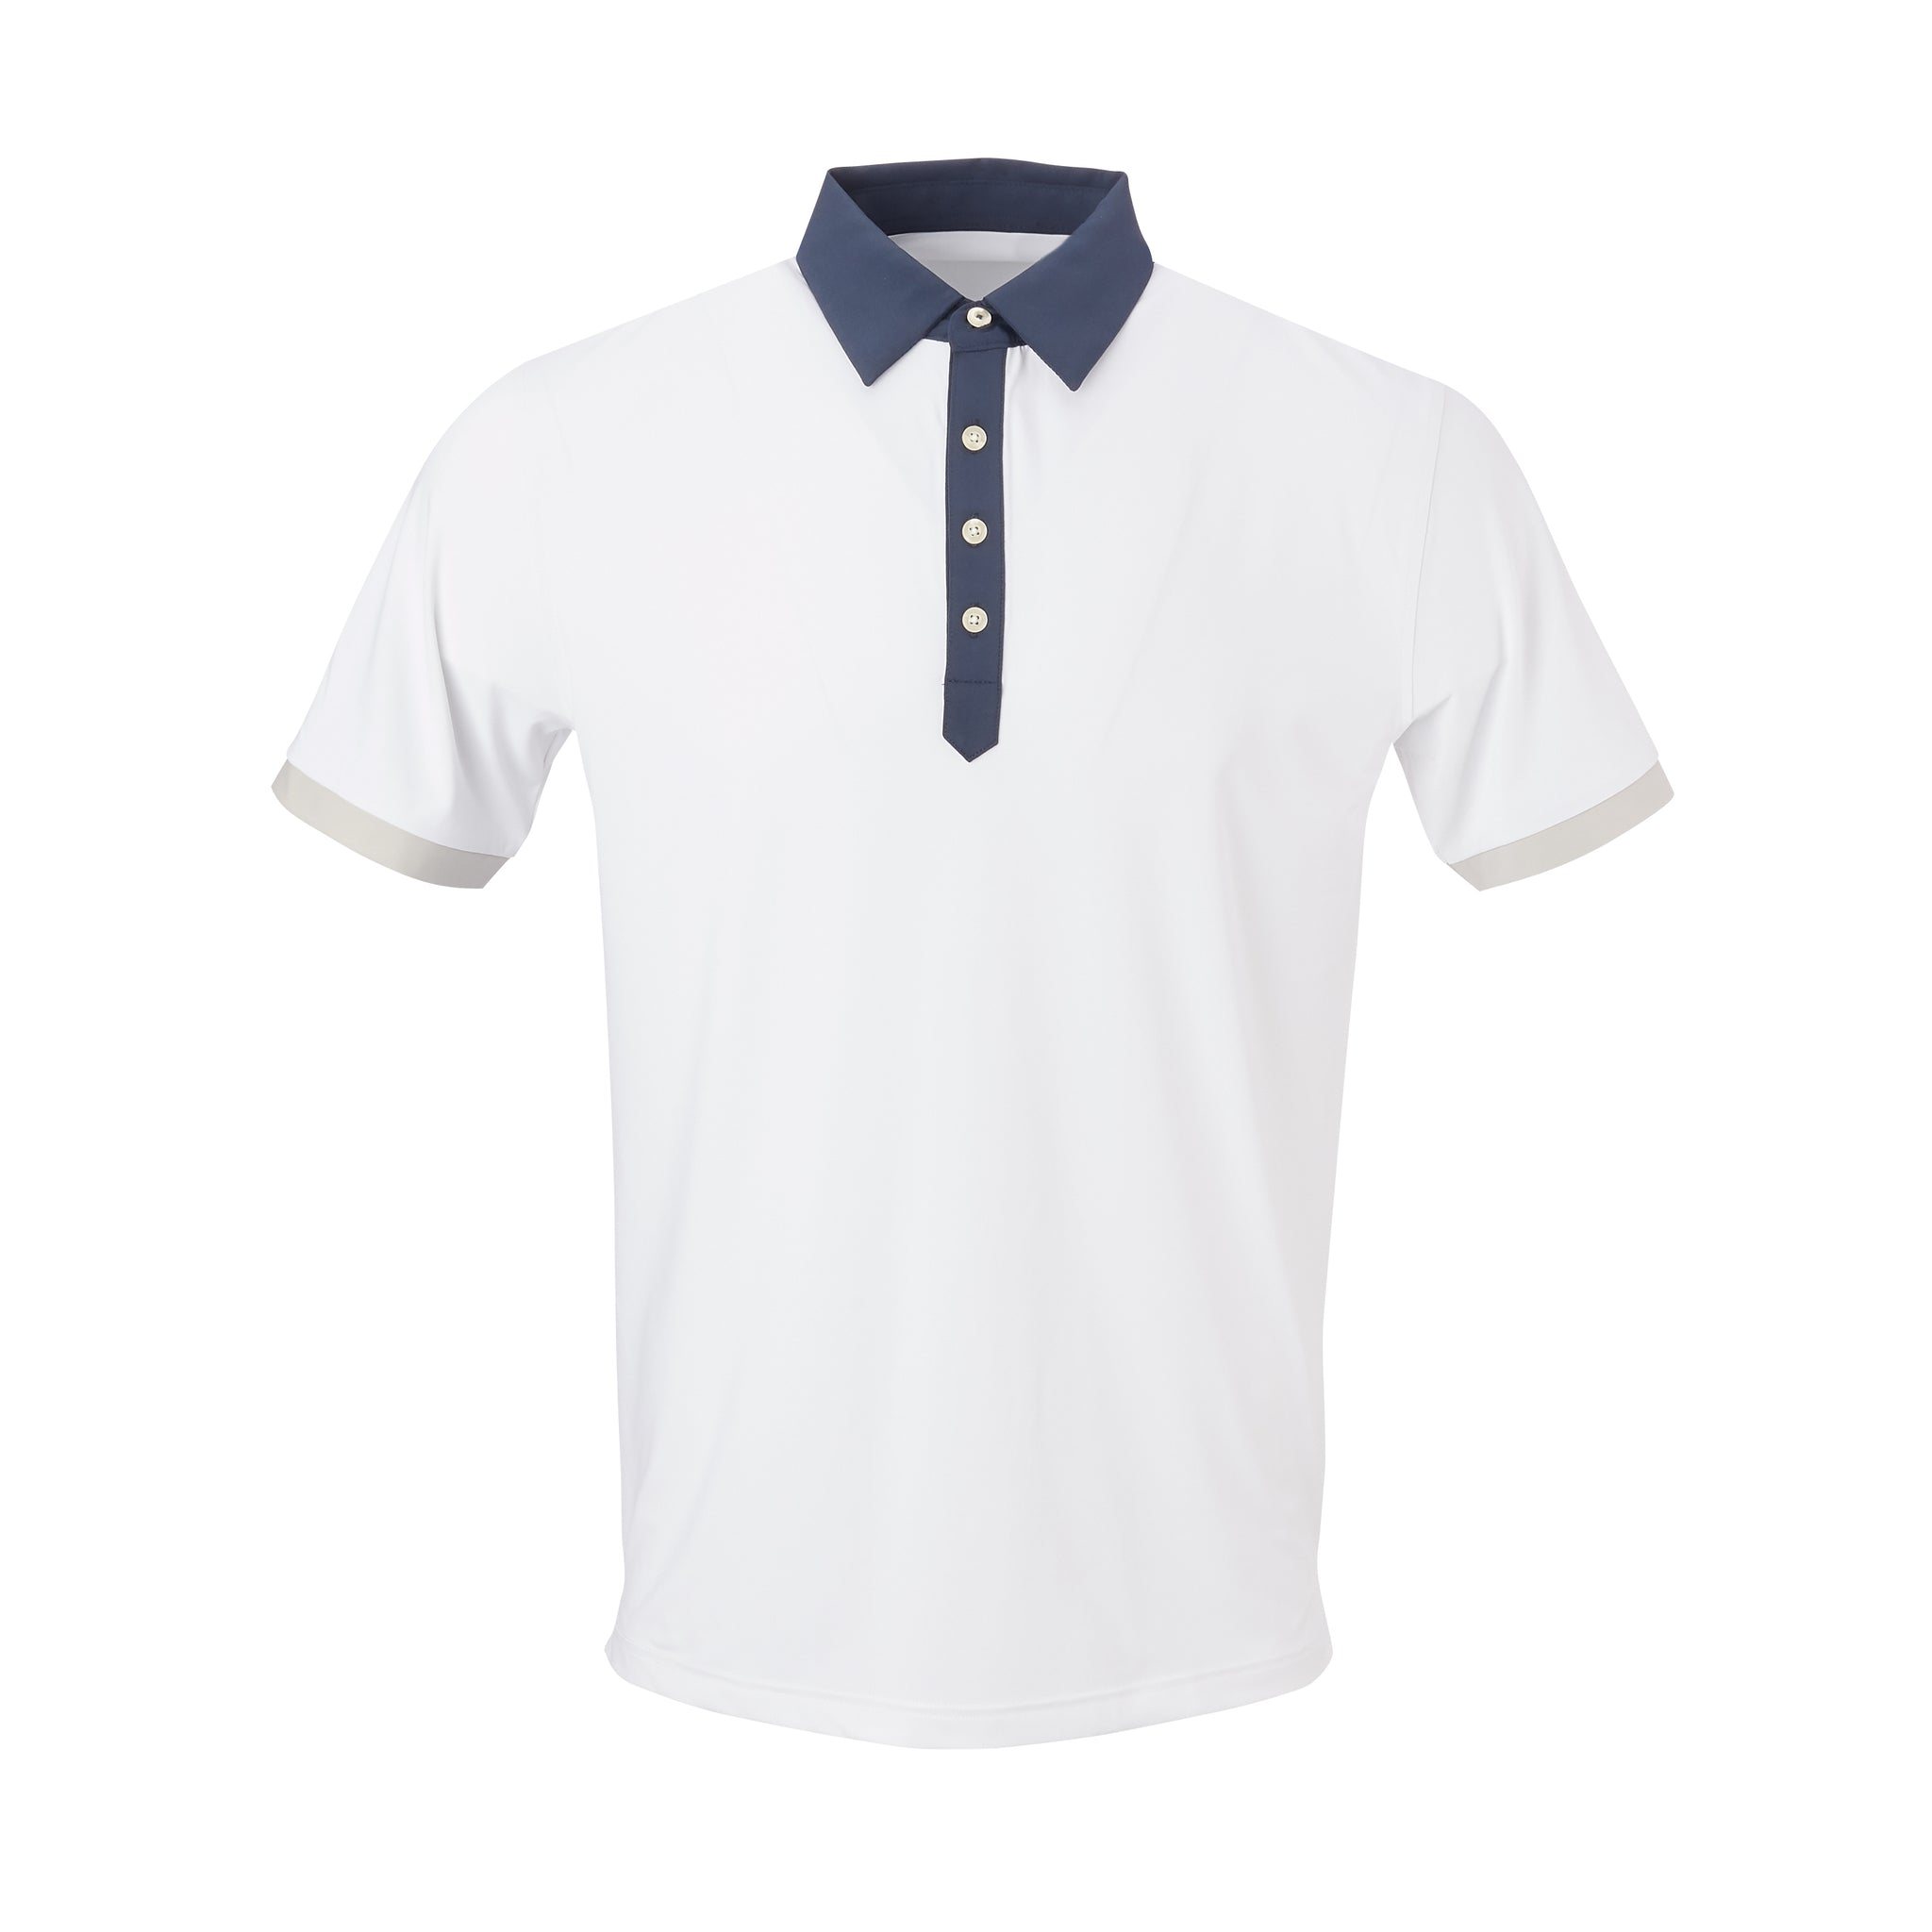 THE STADIUM COLORBLOCK POLO - White/Navy IS86806